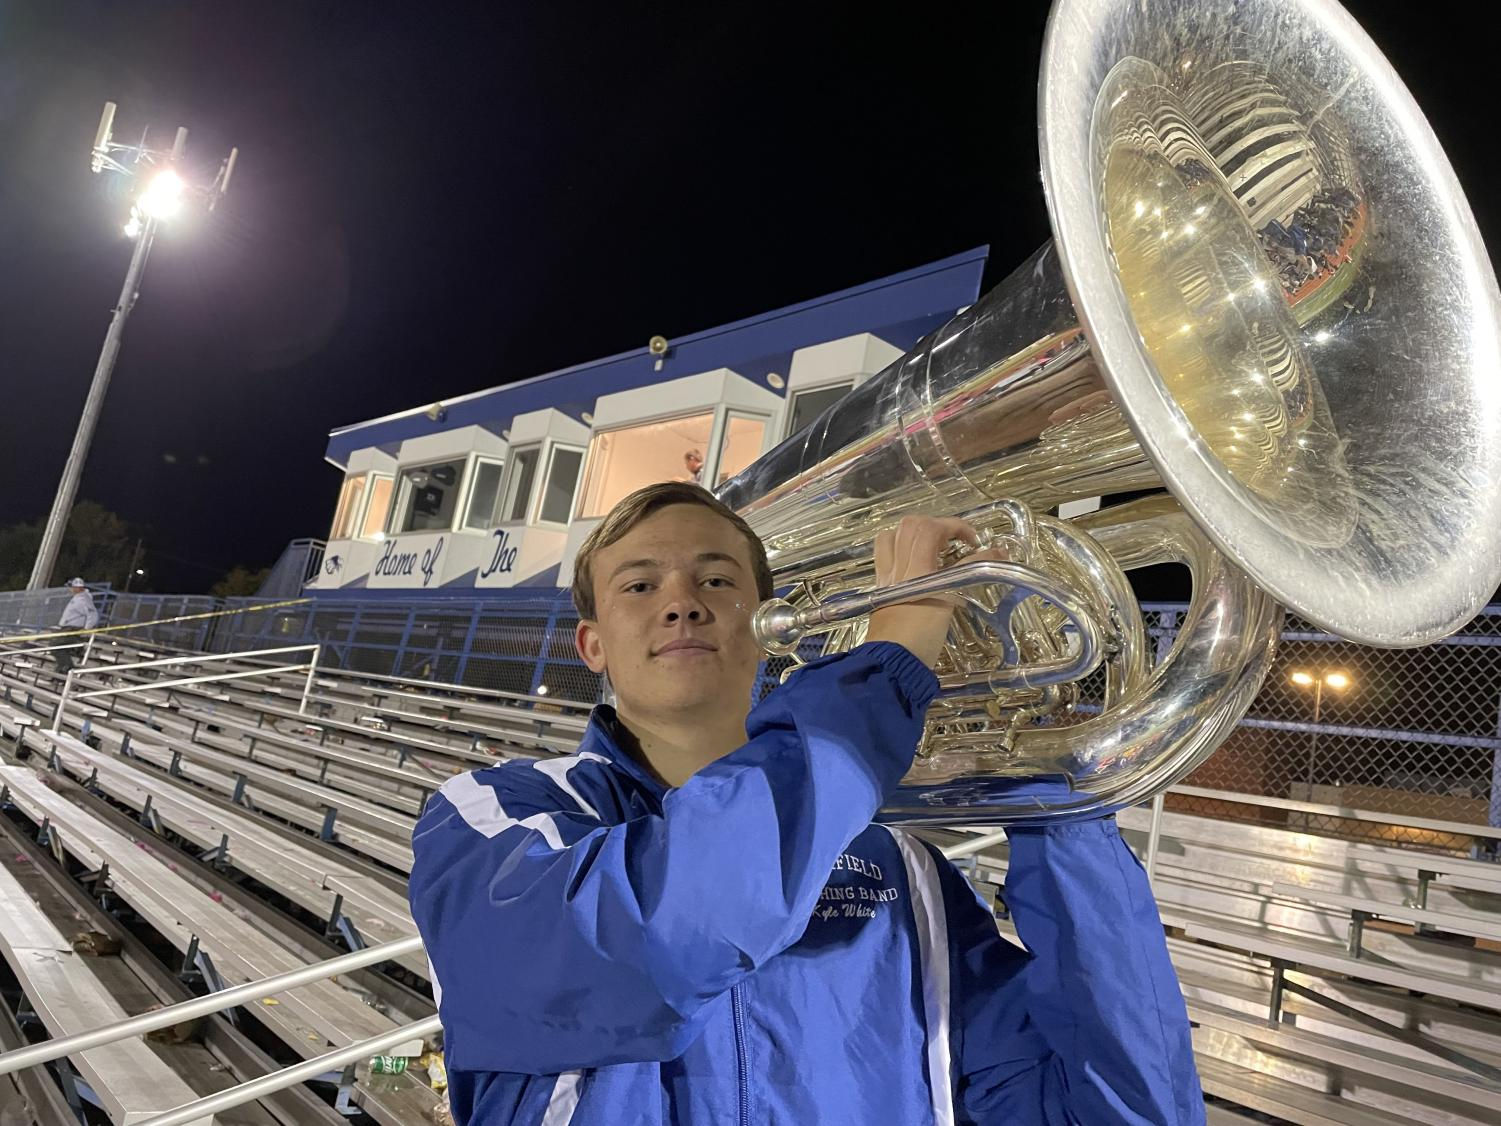 Deep Tones Kyle poses for a photo with his massive instrument before a home football game.